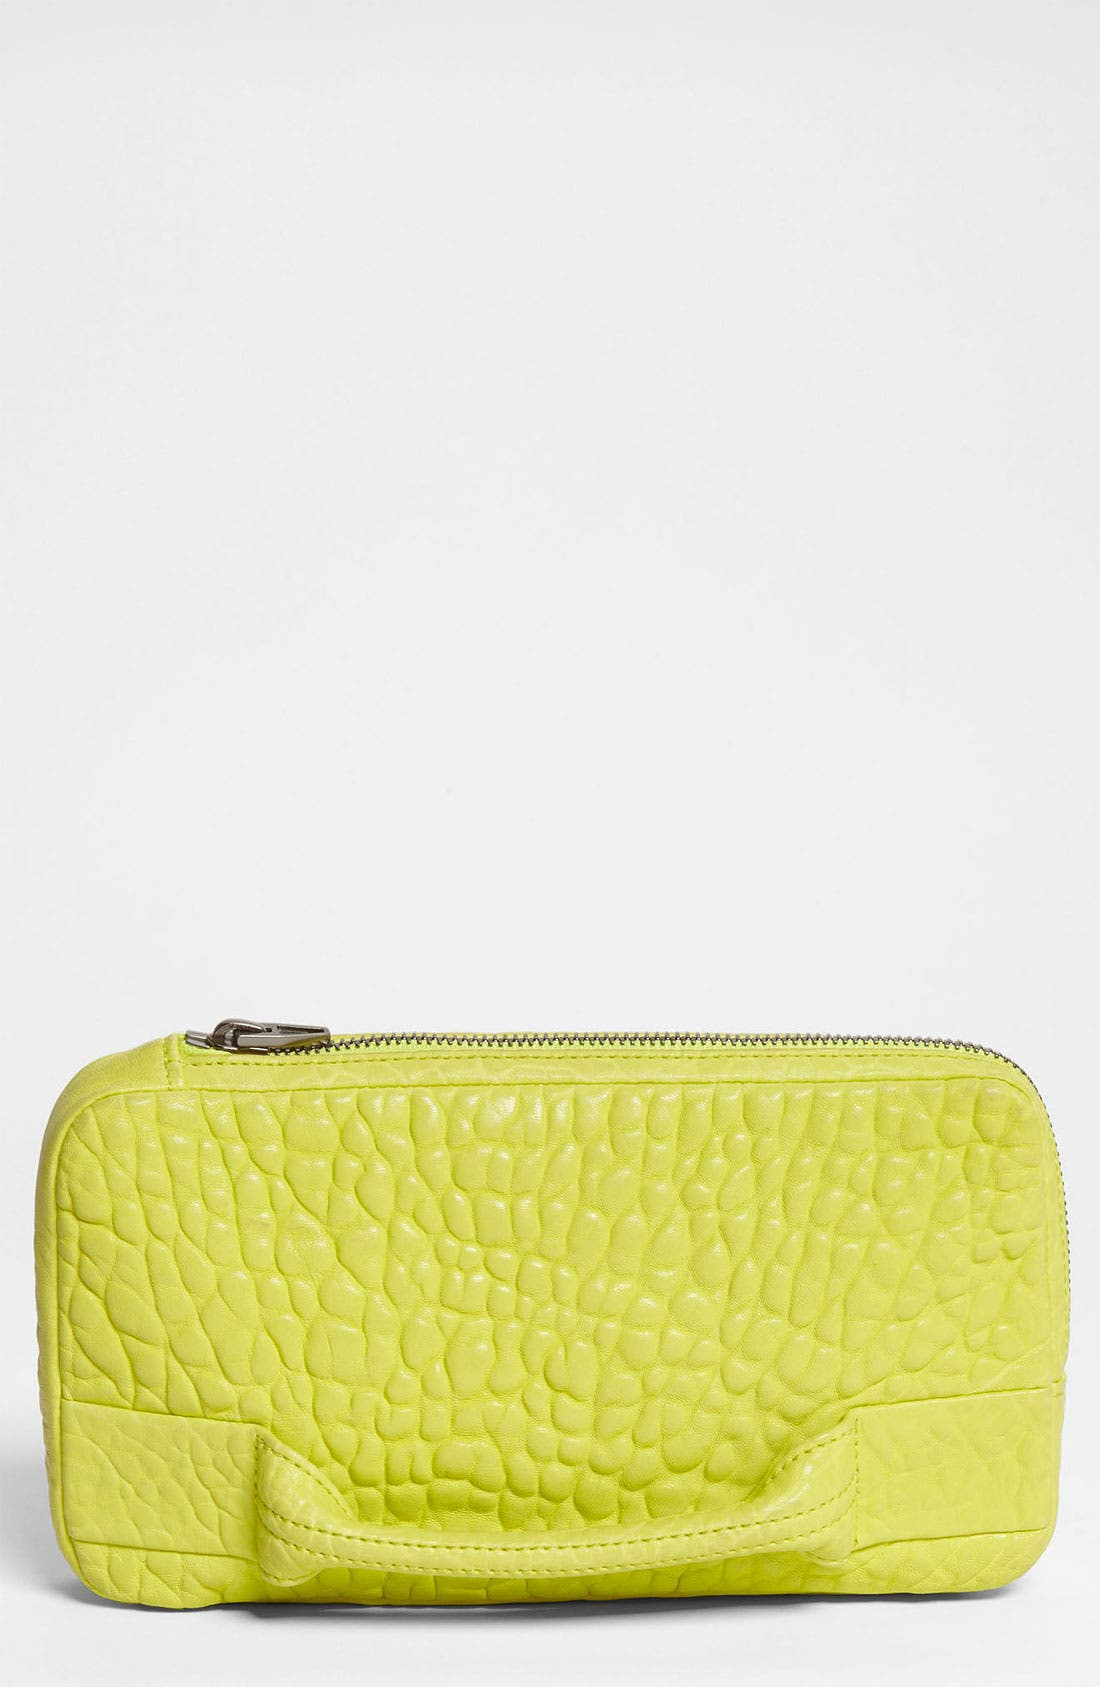 Main Image - Alexander Wang 'Dumbo' Leather Clutch